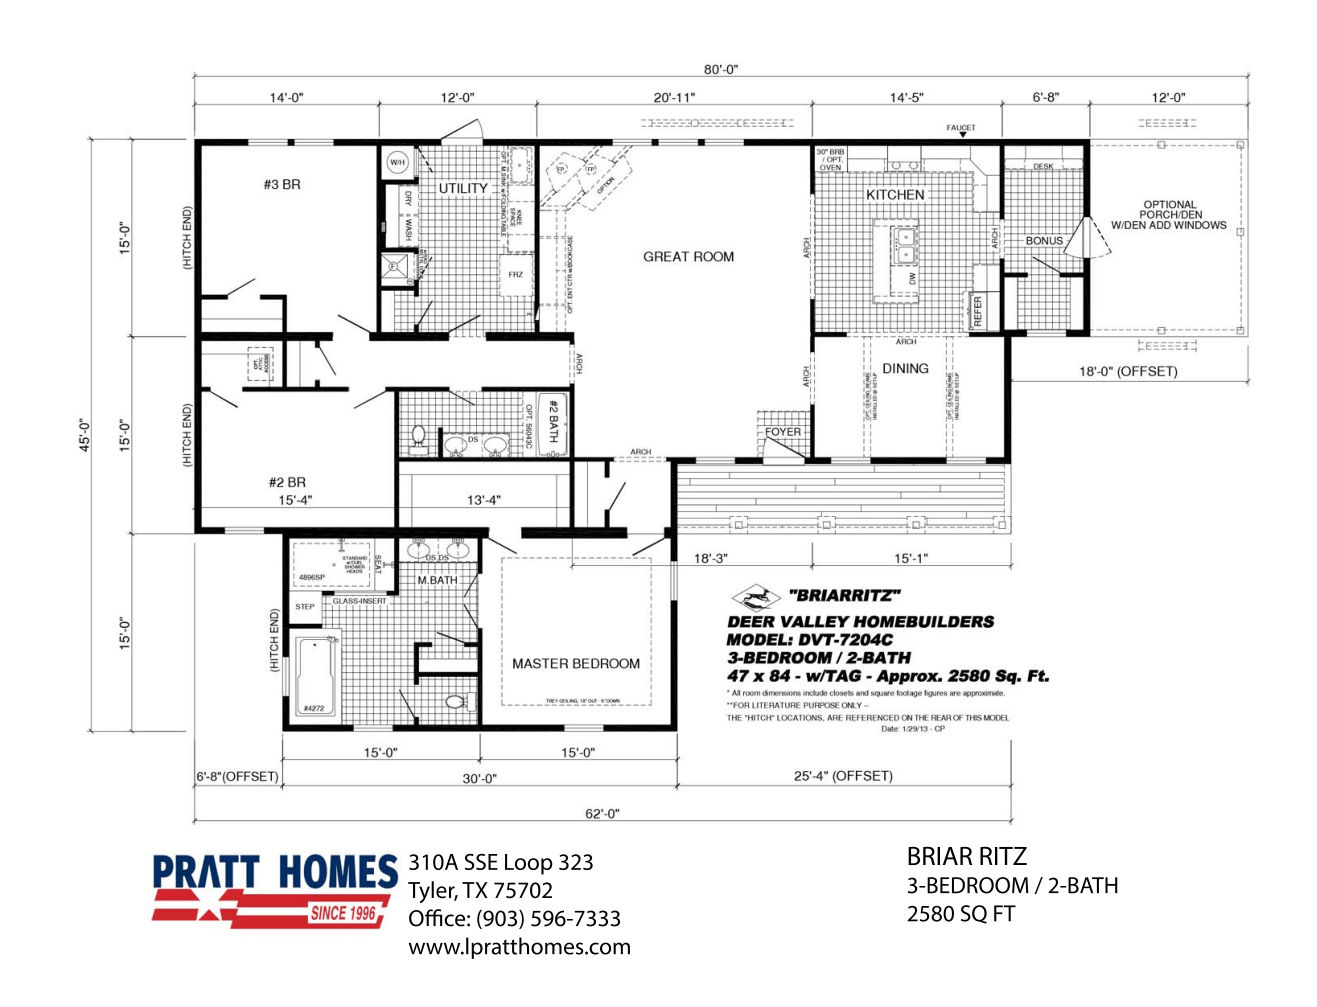 Floor Plan for house model Briar Ritz by Pratt from Tyler Texas